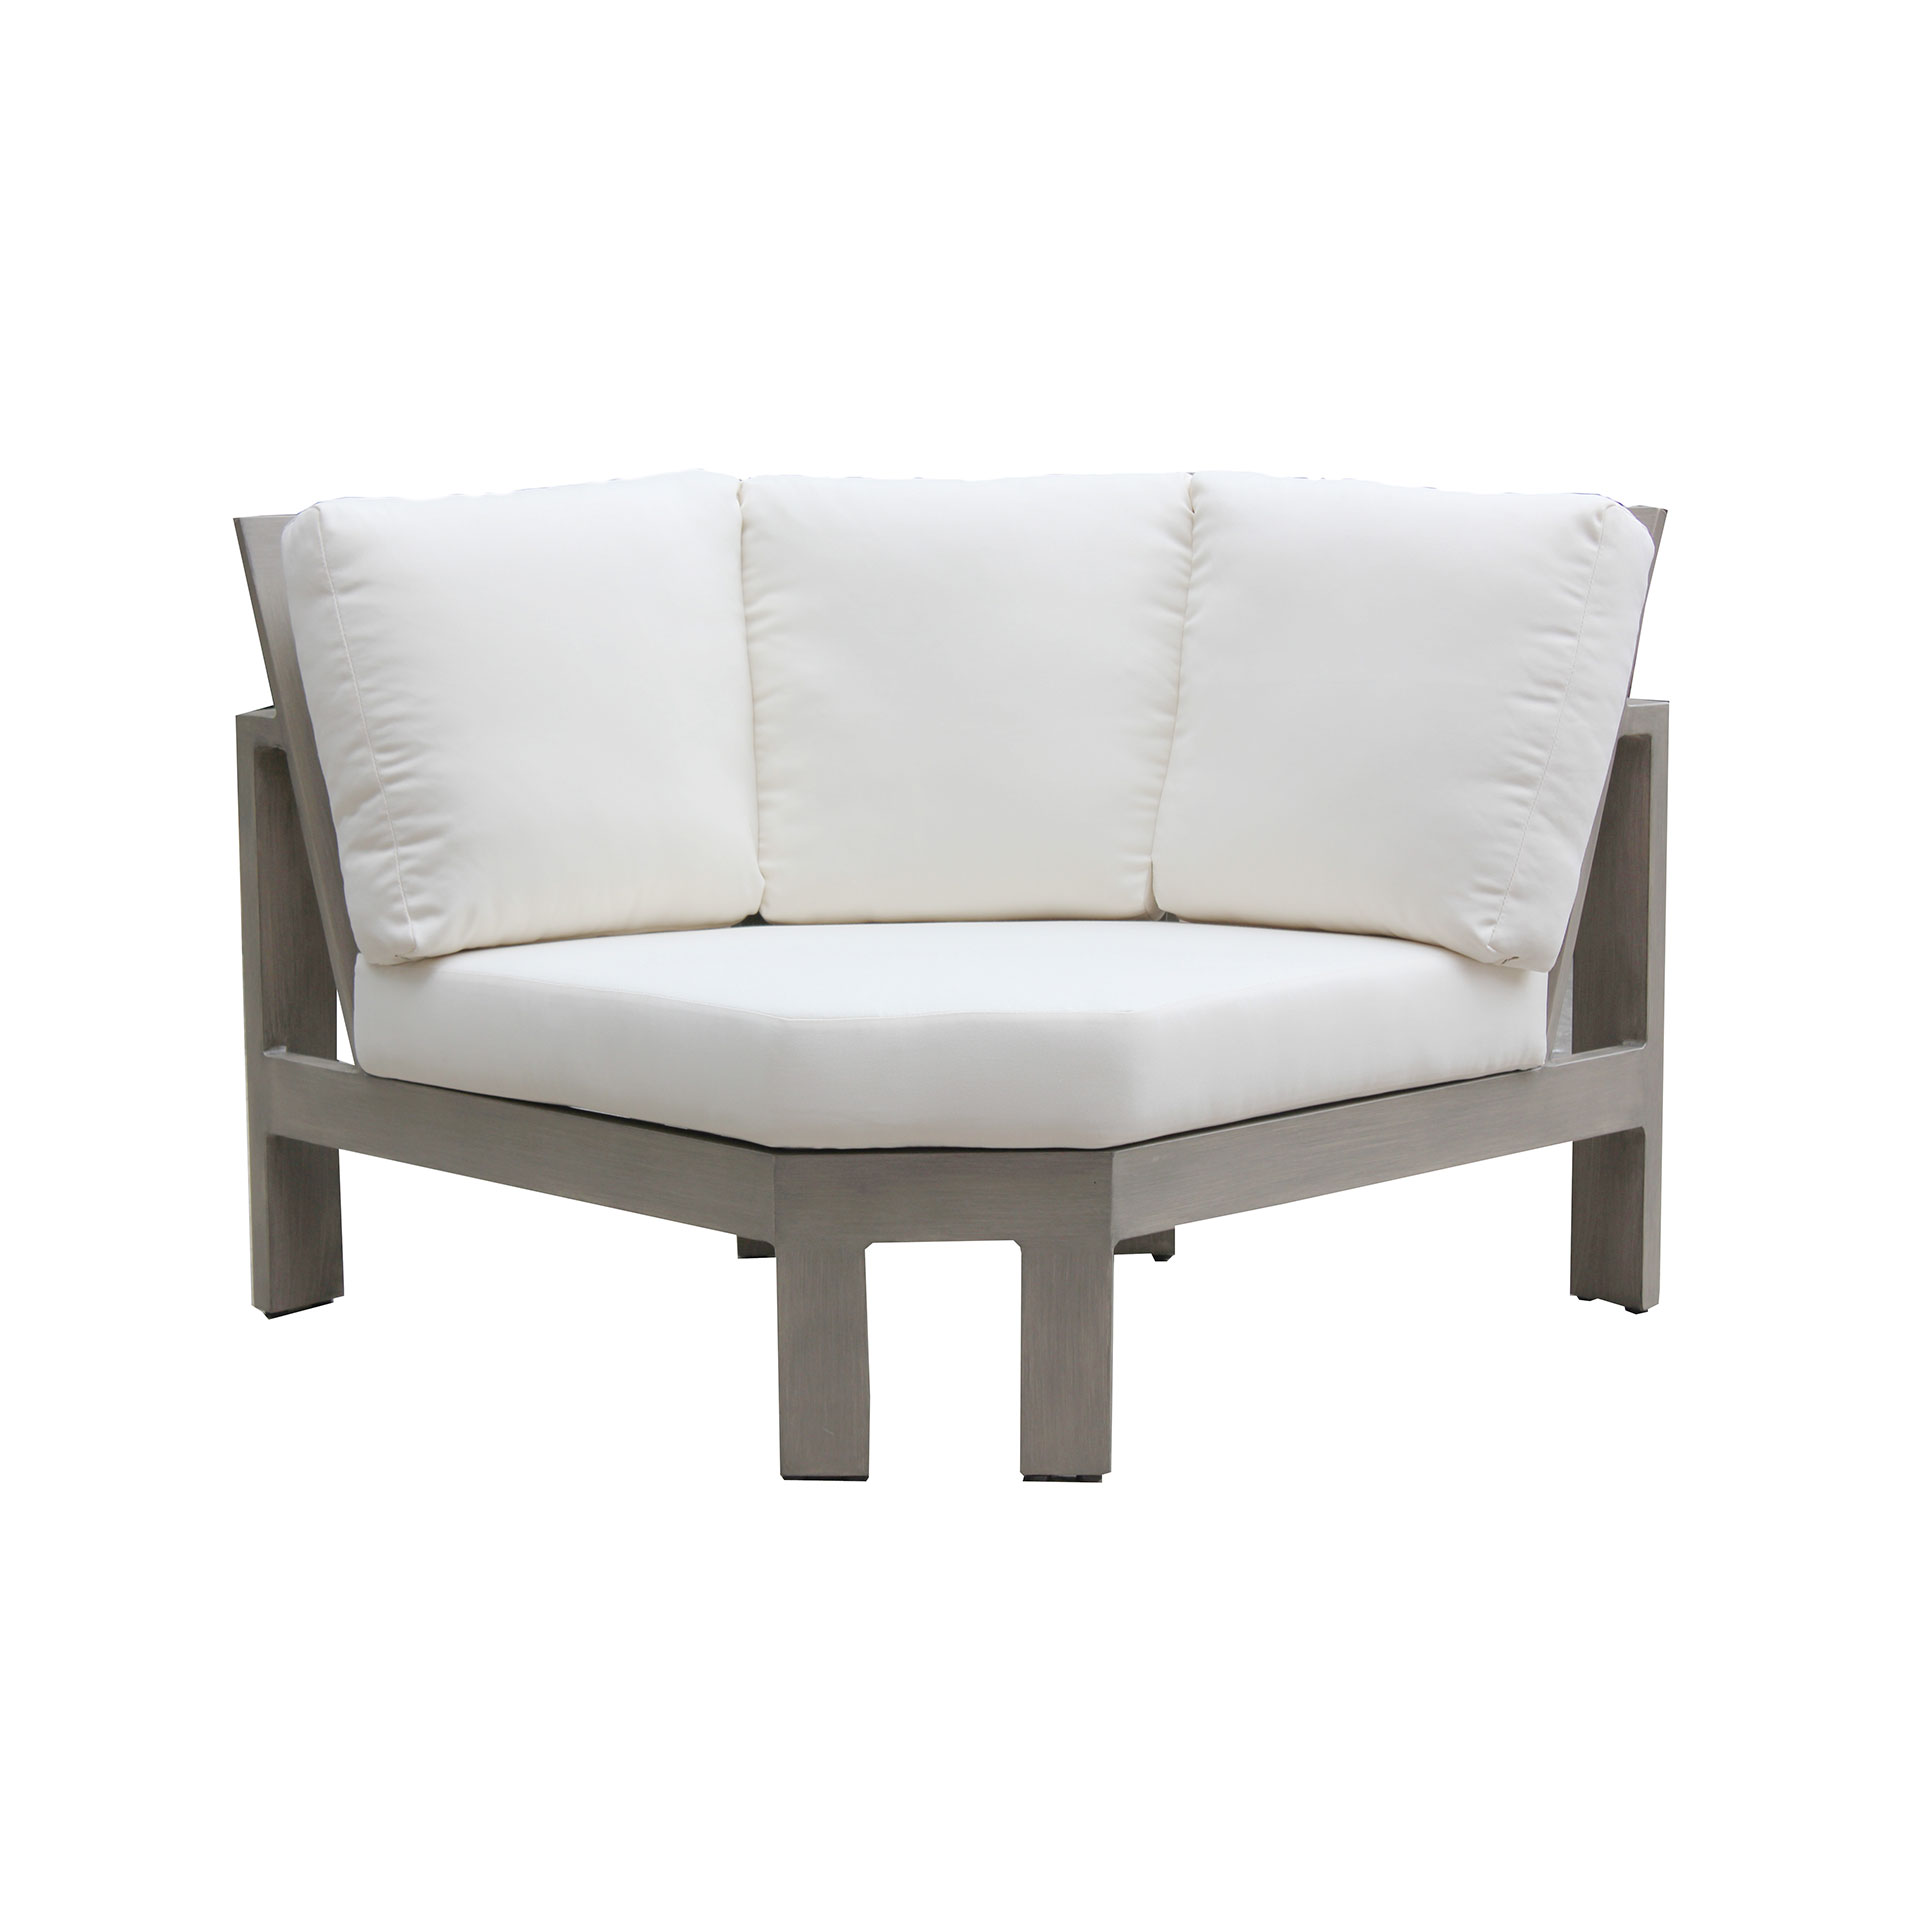 Ratana Park Lane Sectional Corner Chair Leisure Living